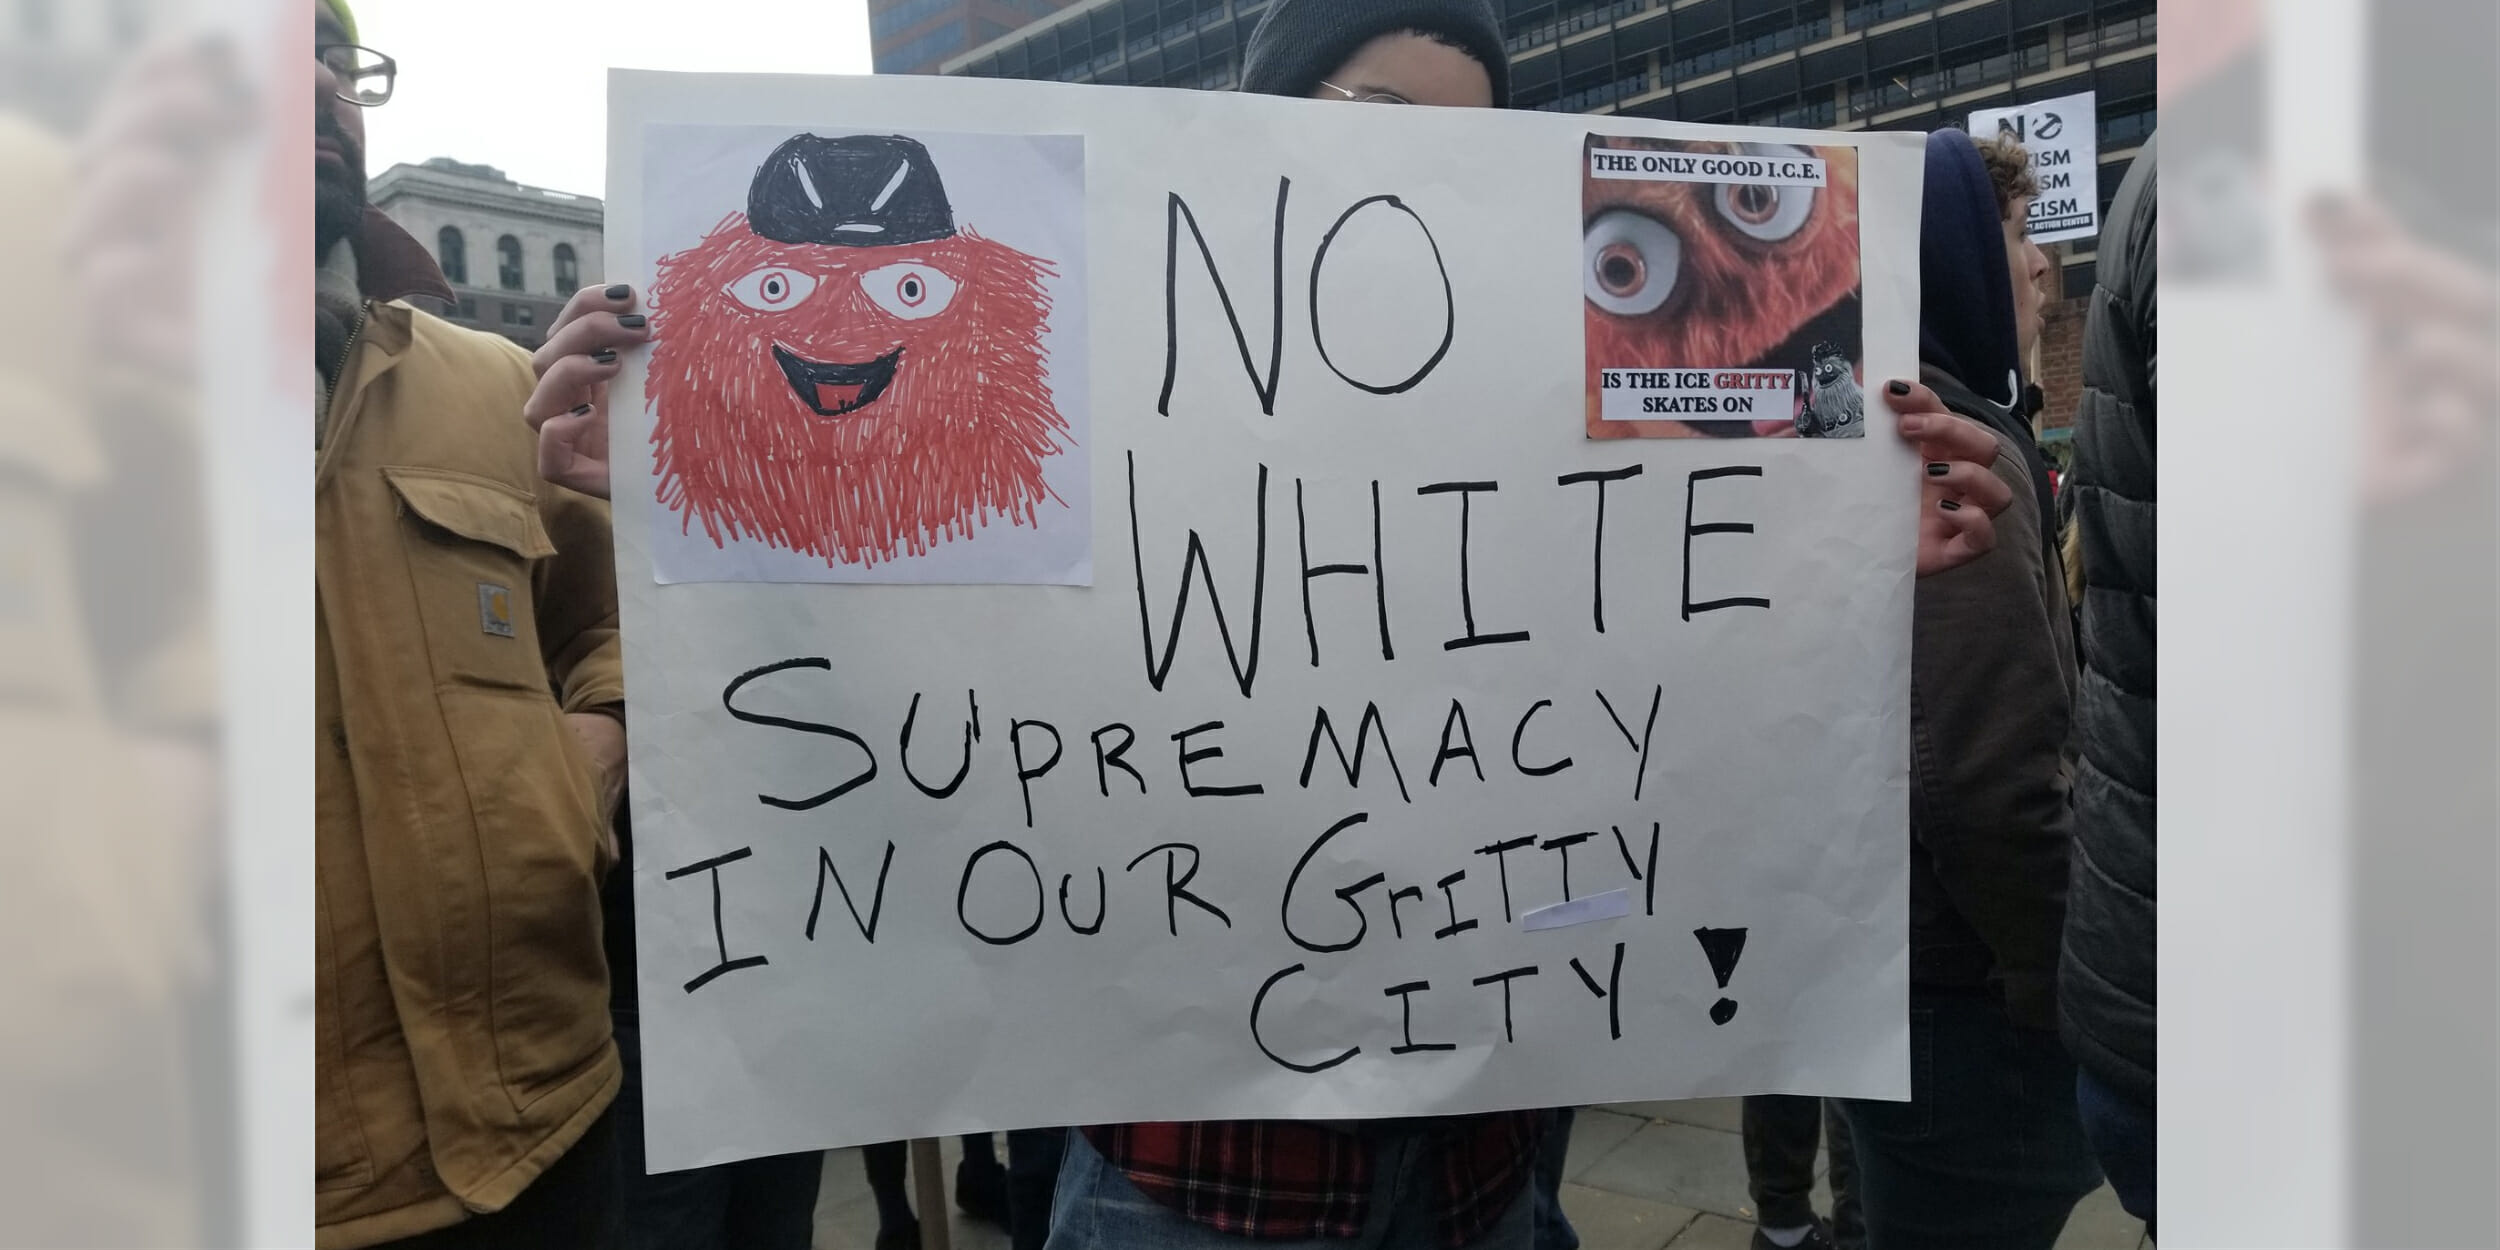 Gritty shows up at Philadelphia far-right rally in full force